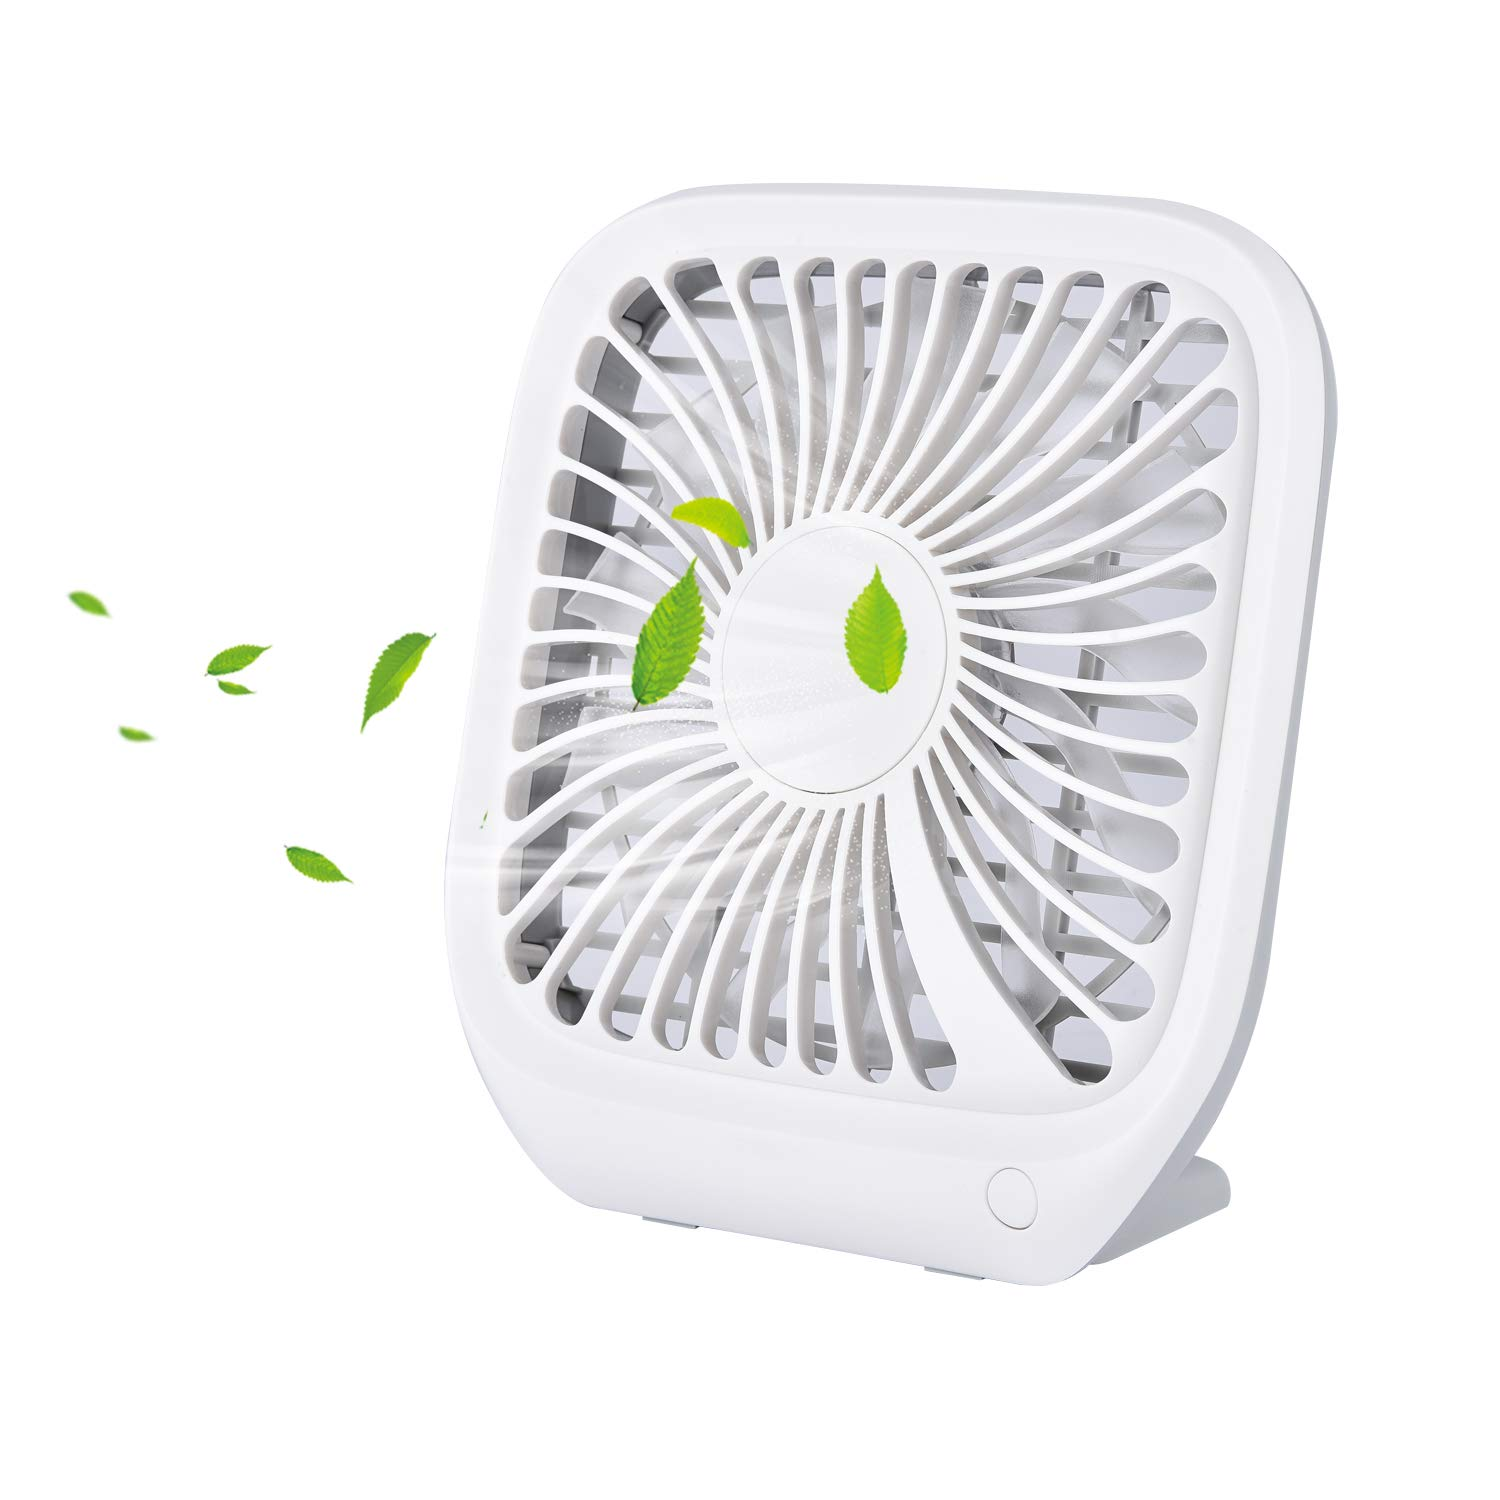 Slotal Small Personal USB Desk Fan, 3 Speeds Ultra-Thin Portable Desktop Table Cooling Fan Powered by USB, Strong Wind, Quiet Operation, for Home Office by slotal